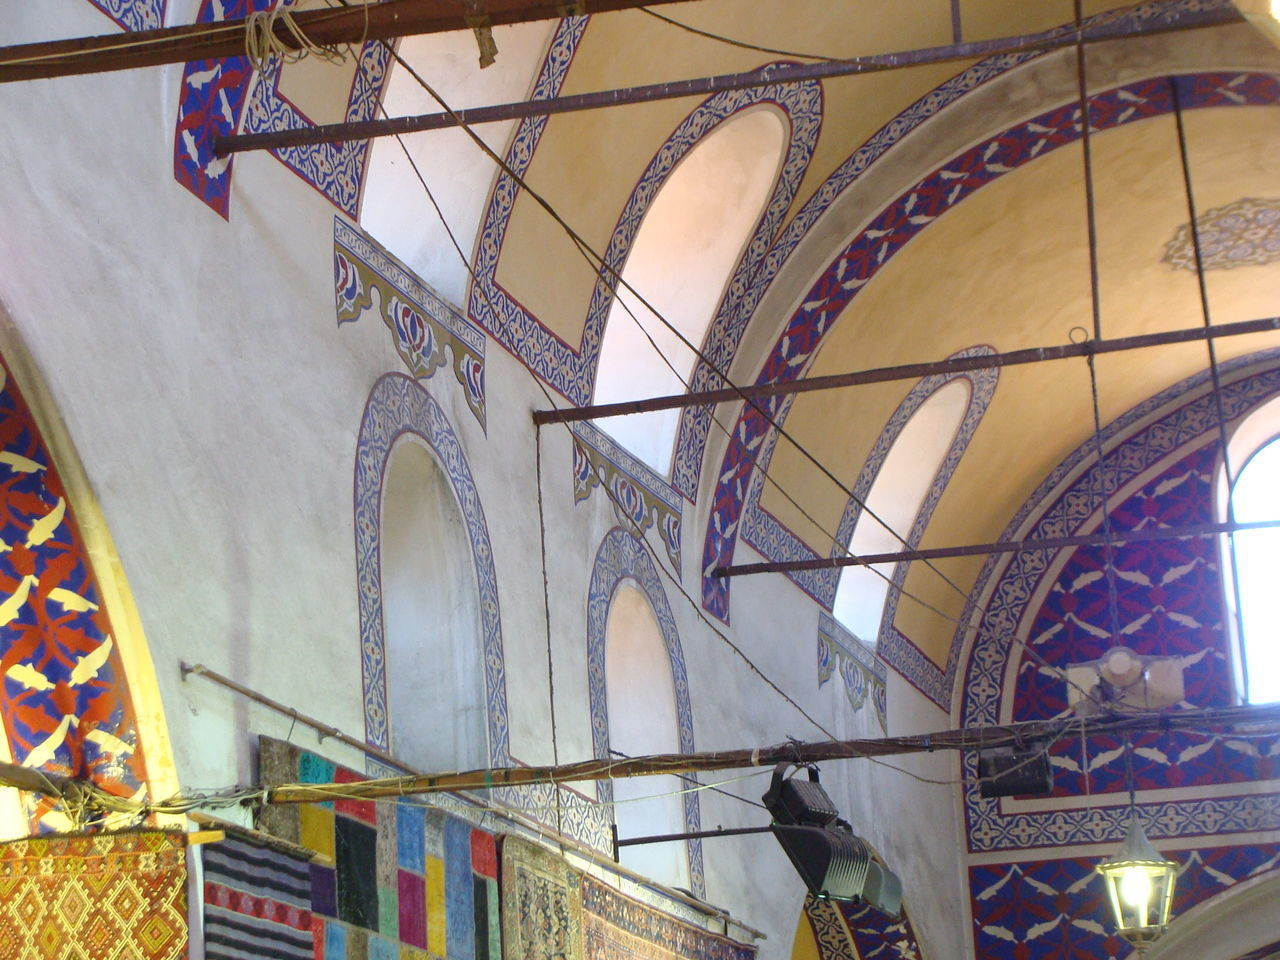 The ceiling of the Grand Bazaar, Istanbul Architecture Art Built Structure Celing Art City Commerce Covered Market Roof Detail Blue Black Light Window Istanbul No People Market Day Grand Bazaar Istanbul Looking Up Low Angle View No People Ottoman Architecture Painting Traditional Travel Destinations Travel Photography